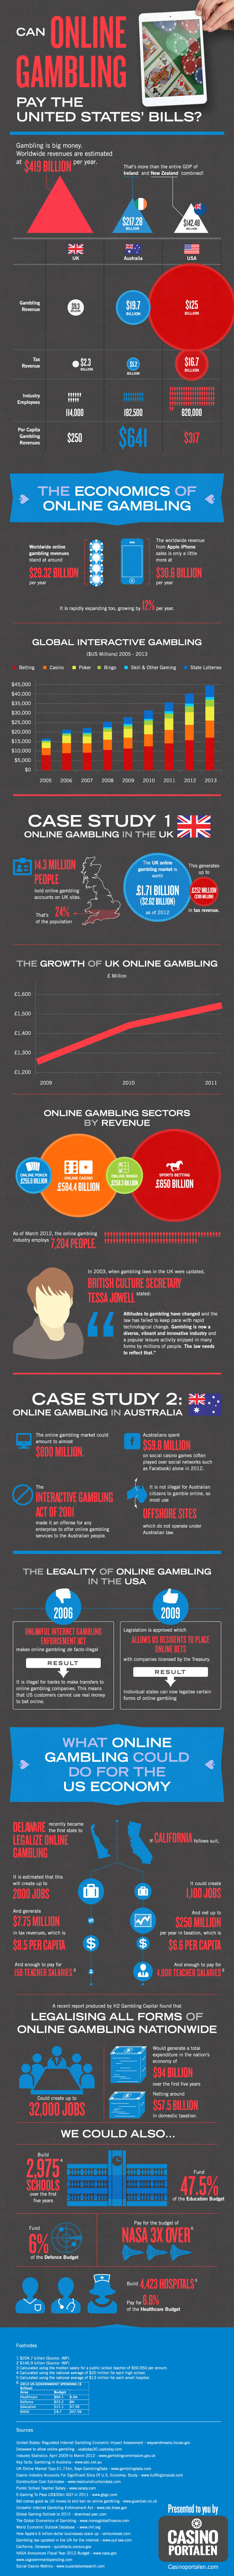 can online gambling pay the nations bills infographic 5176c1dfc77ce Infographic: Can Online Gambling Pay The United States Bills?